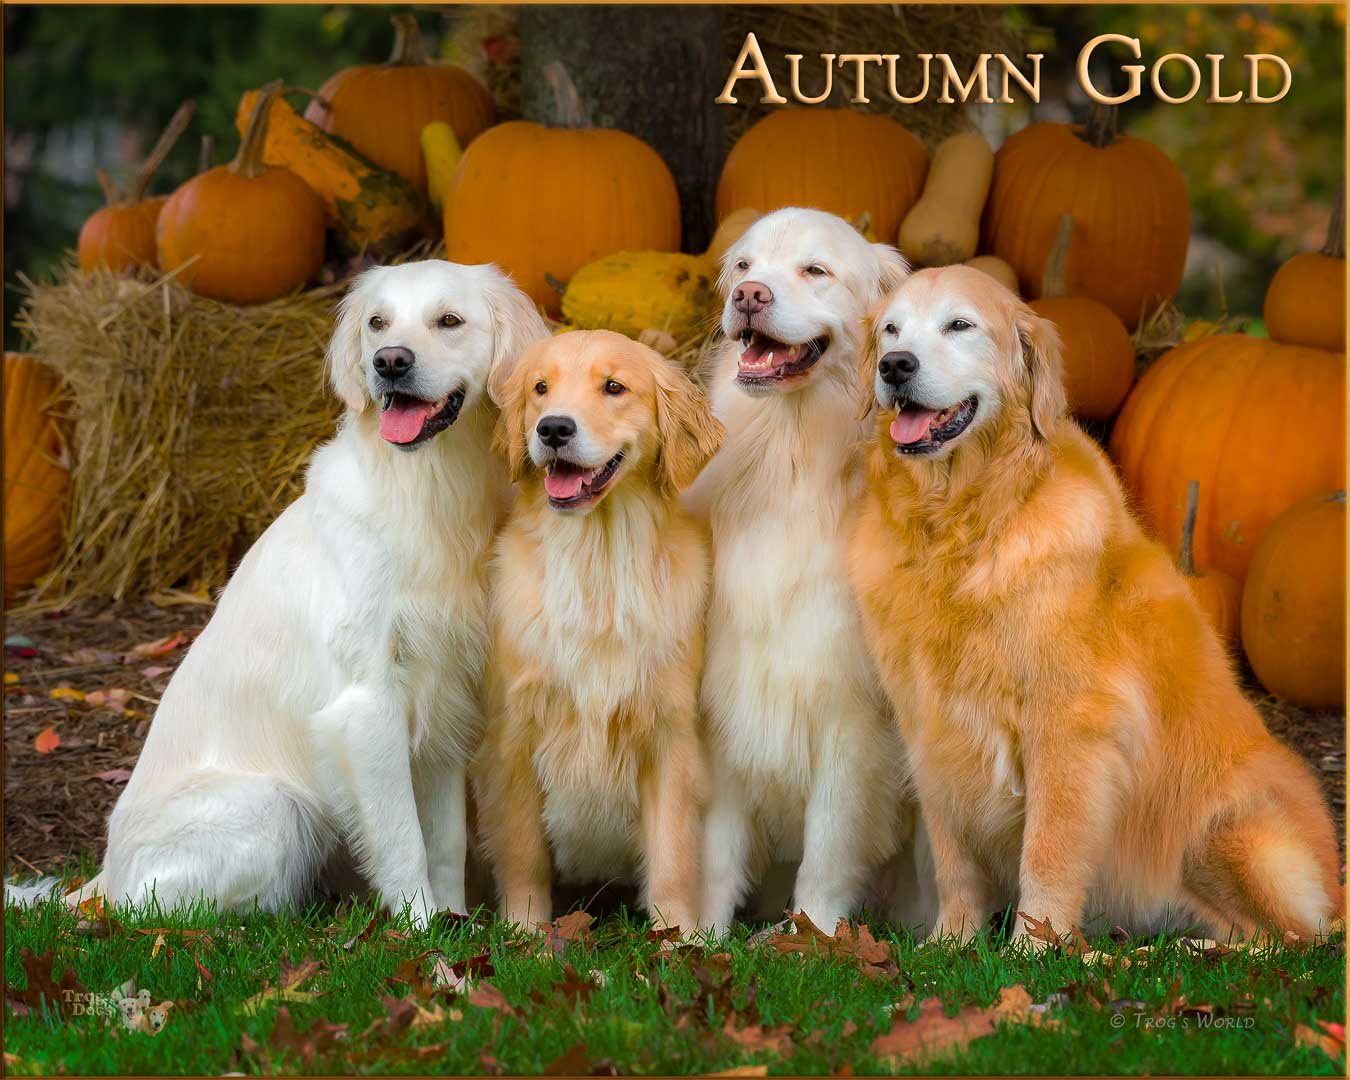 Four Golden Retrievers pose in front of the pumpkins